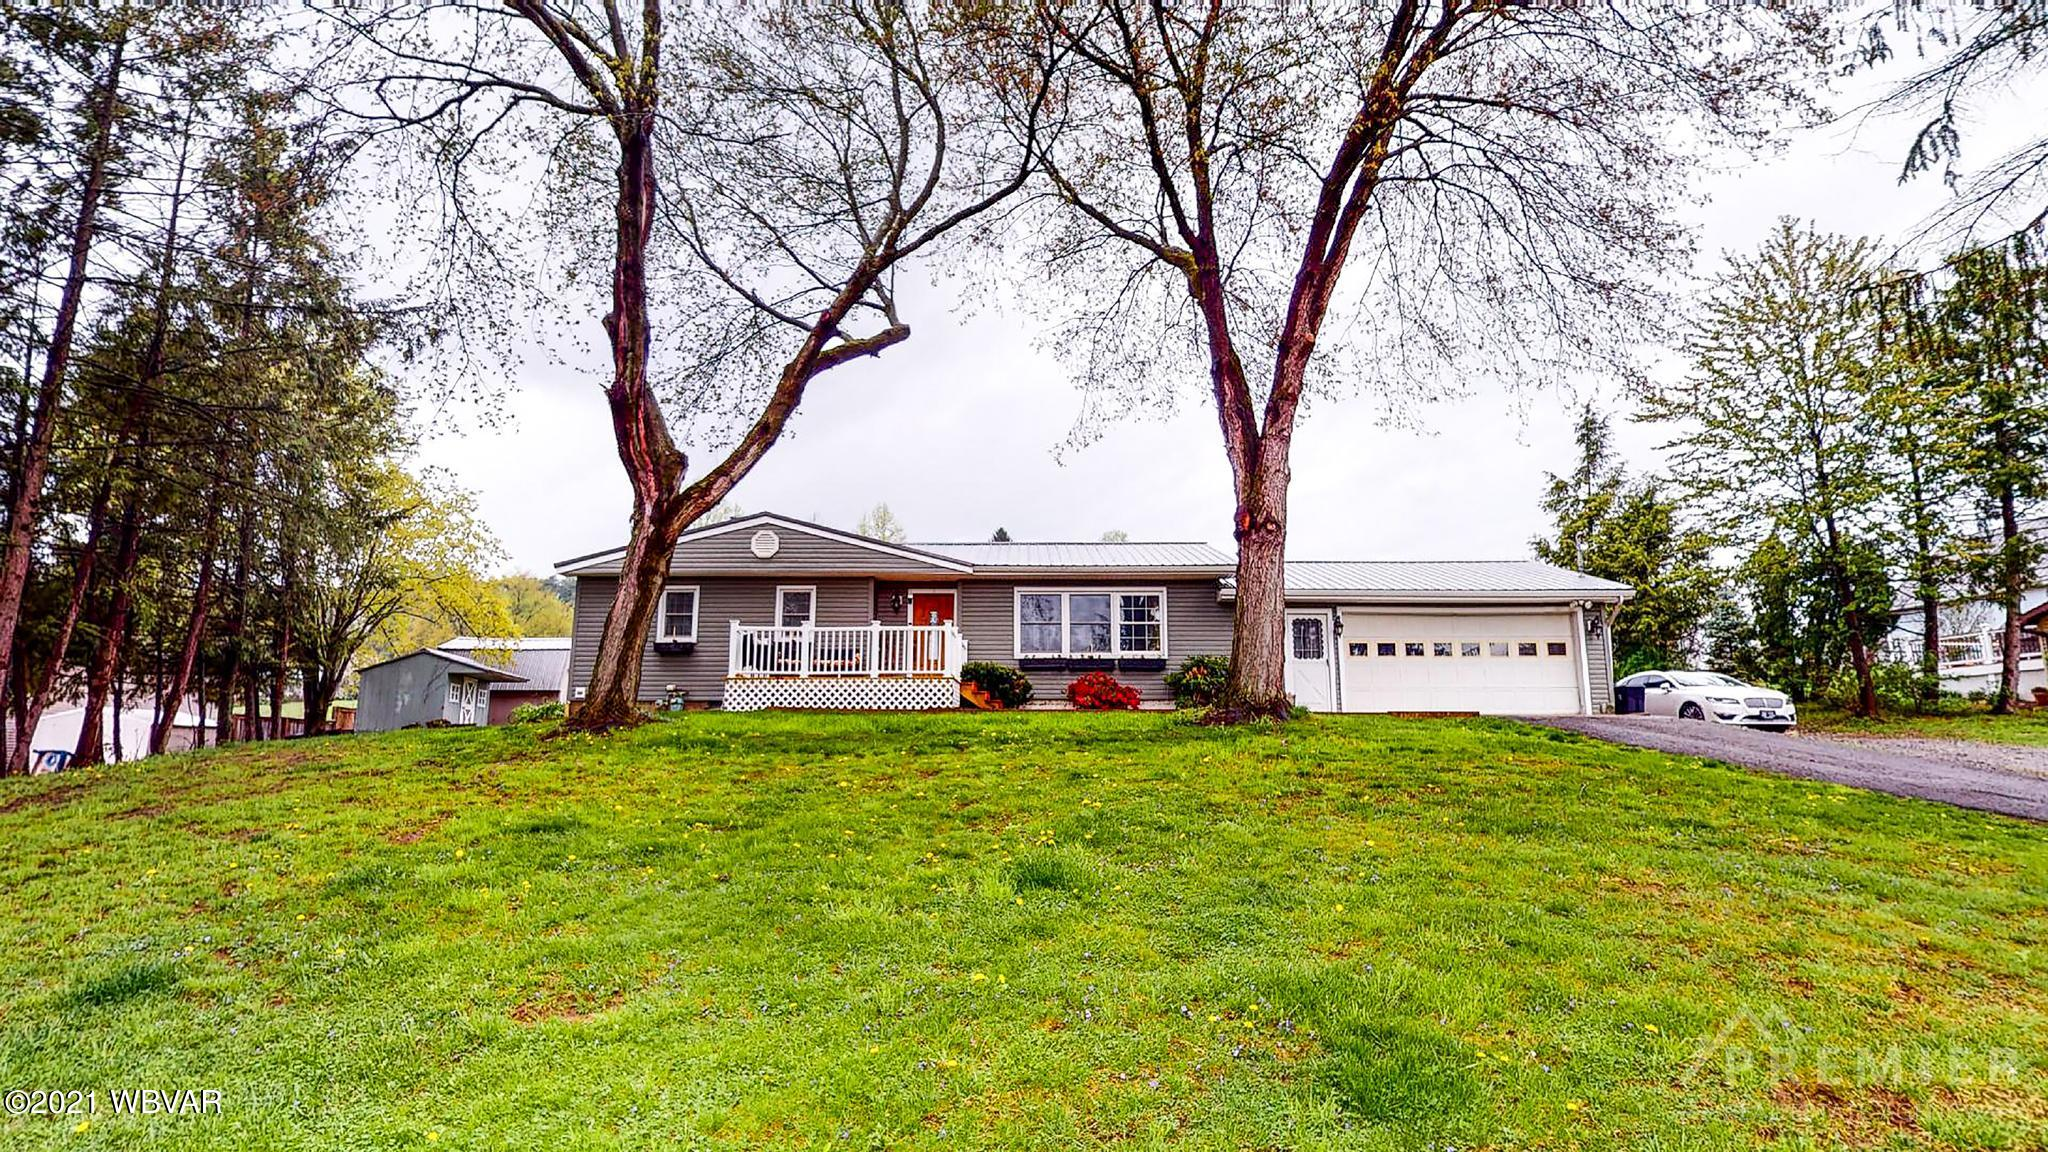 10 PRINCETON AVE EXTENSION, Williamsport, PA 17701, 3 Bedrooms Bedrooms, ,1 BathroomBathrooms,Residential,For sale,PRINCETON AVE,WB-92422